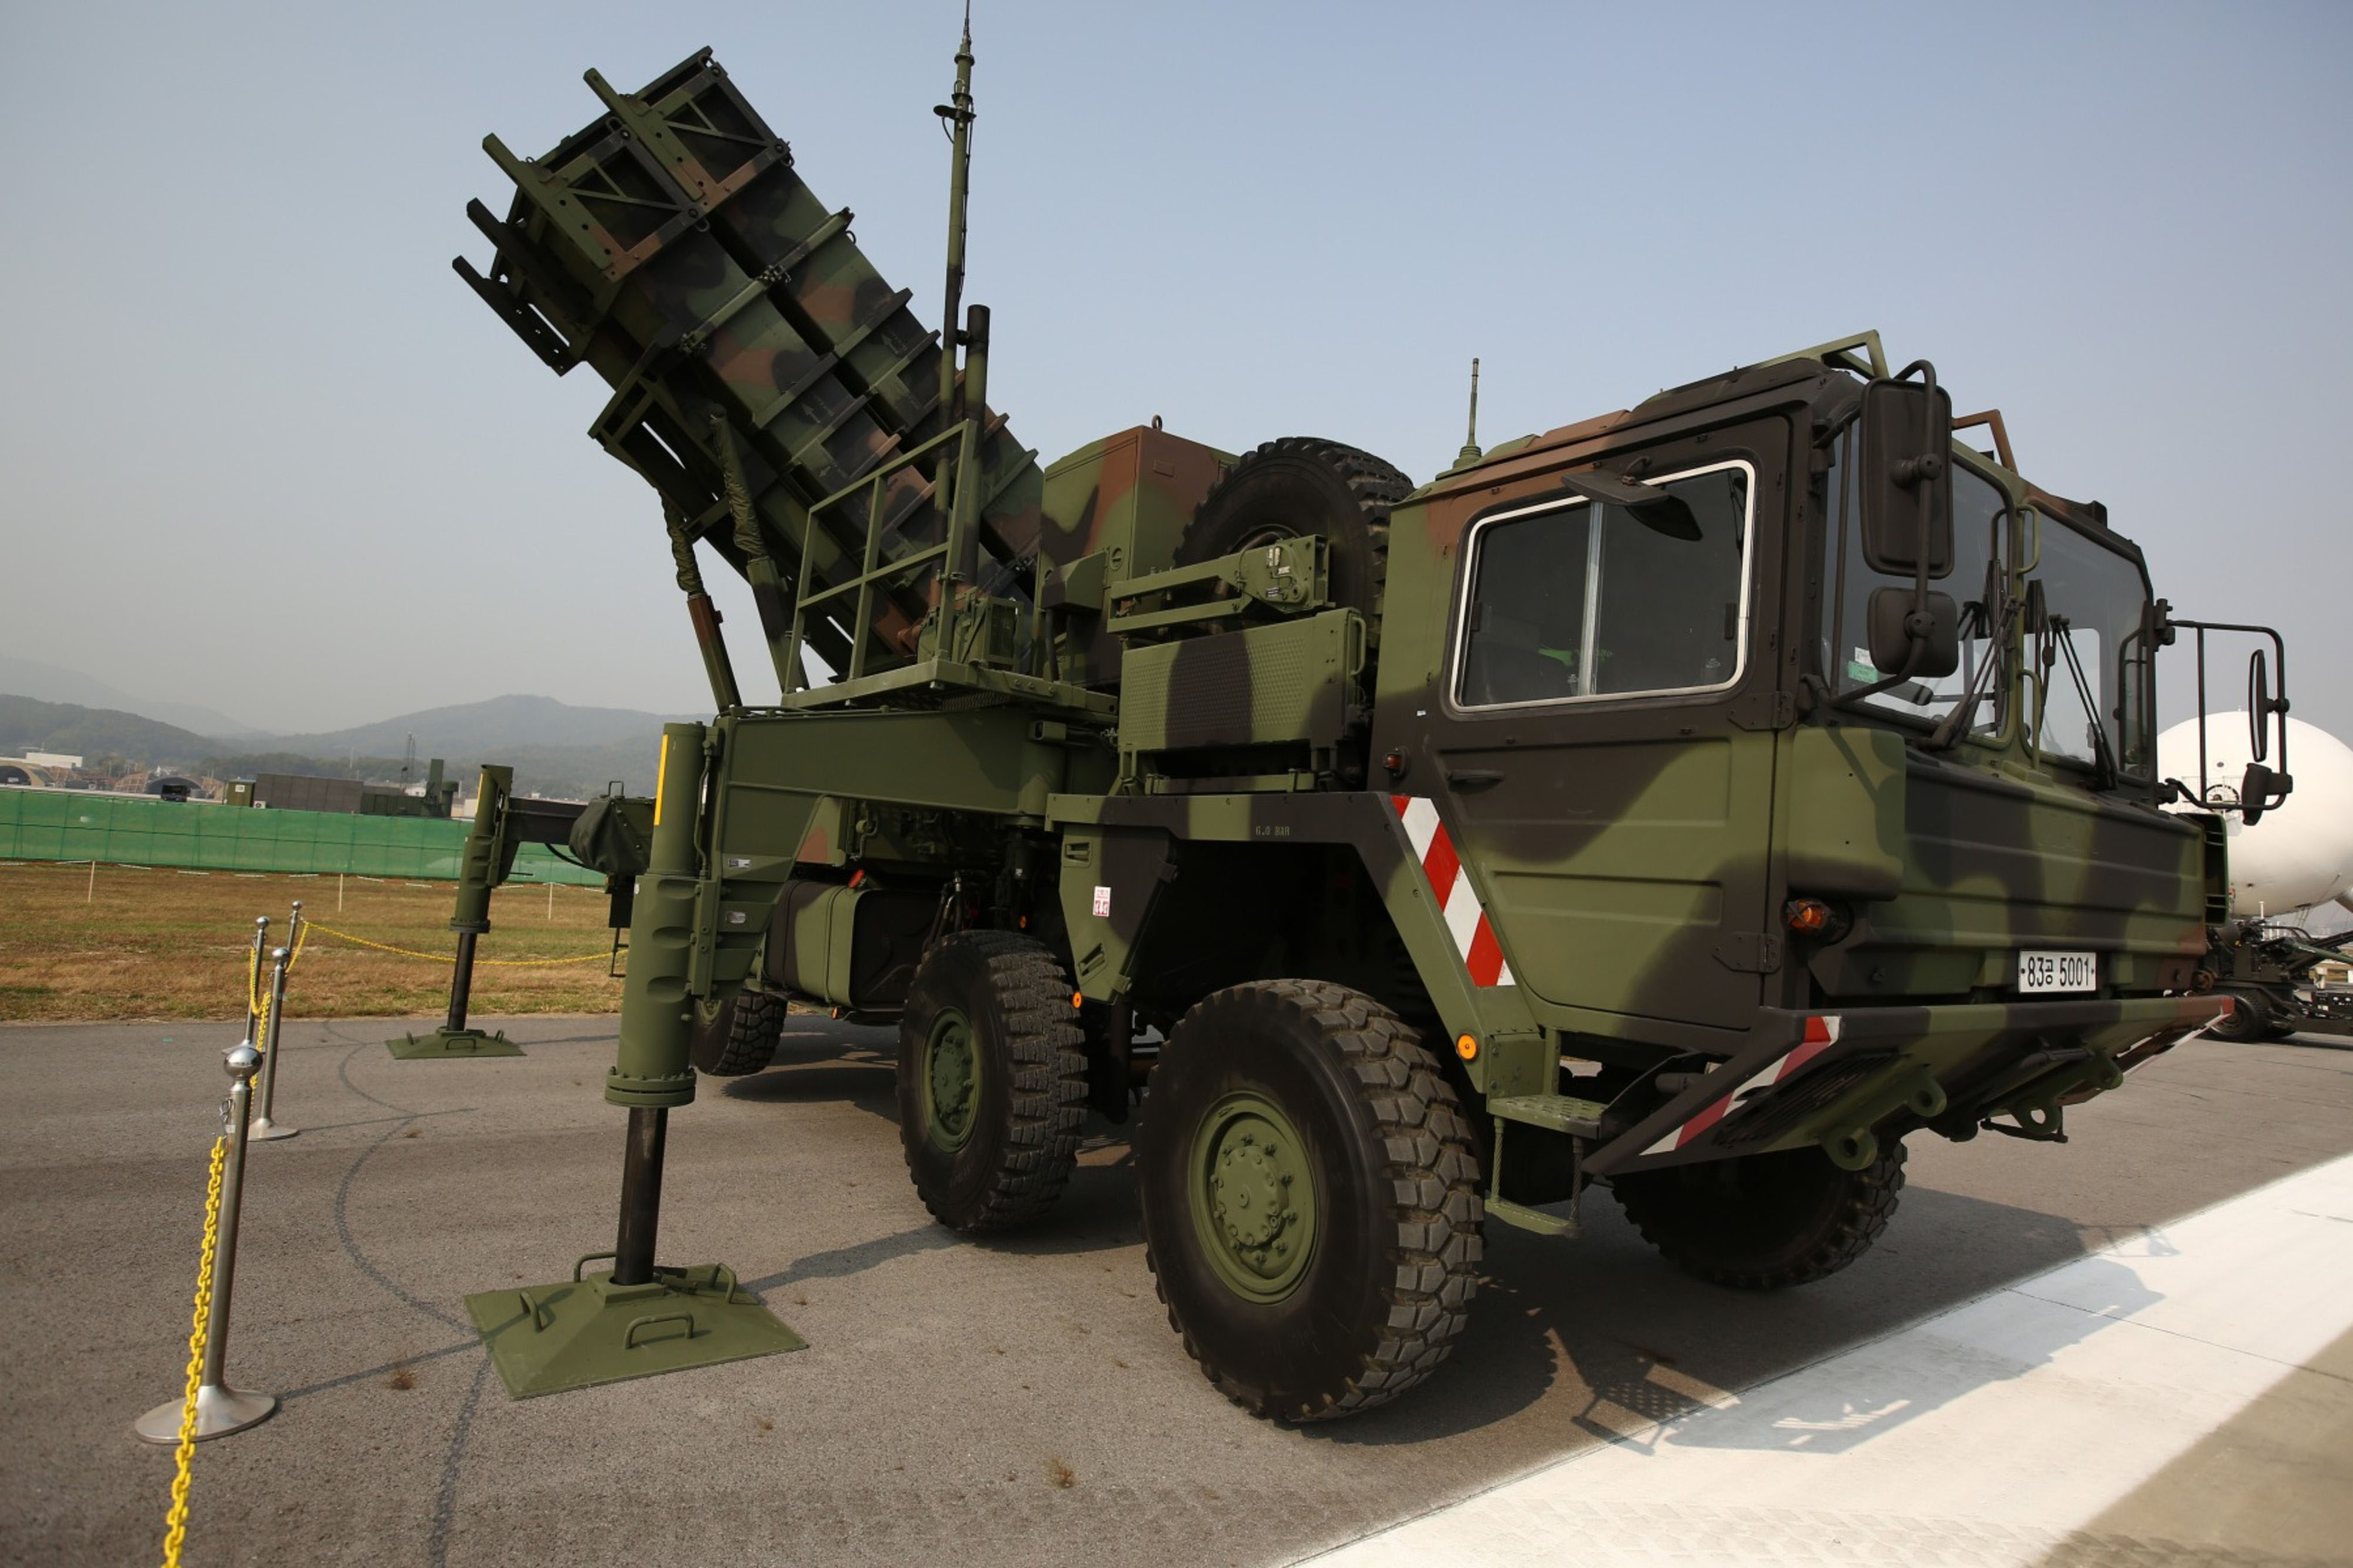 The MIM-104 Patriot surface-to-air missile system stands on display at the Seoul International Aerospace & Defense Exhibition in Seongnam, South Korea, on Oct.19, 2015. MUST CREDIT: Bloomberg photo by SeongJoon Cho.